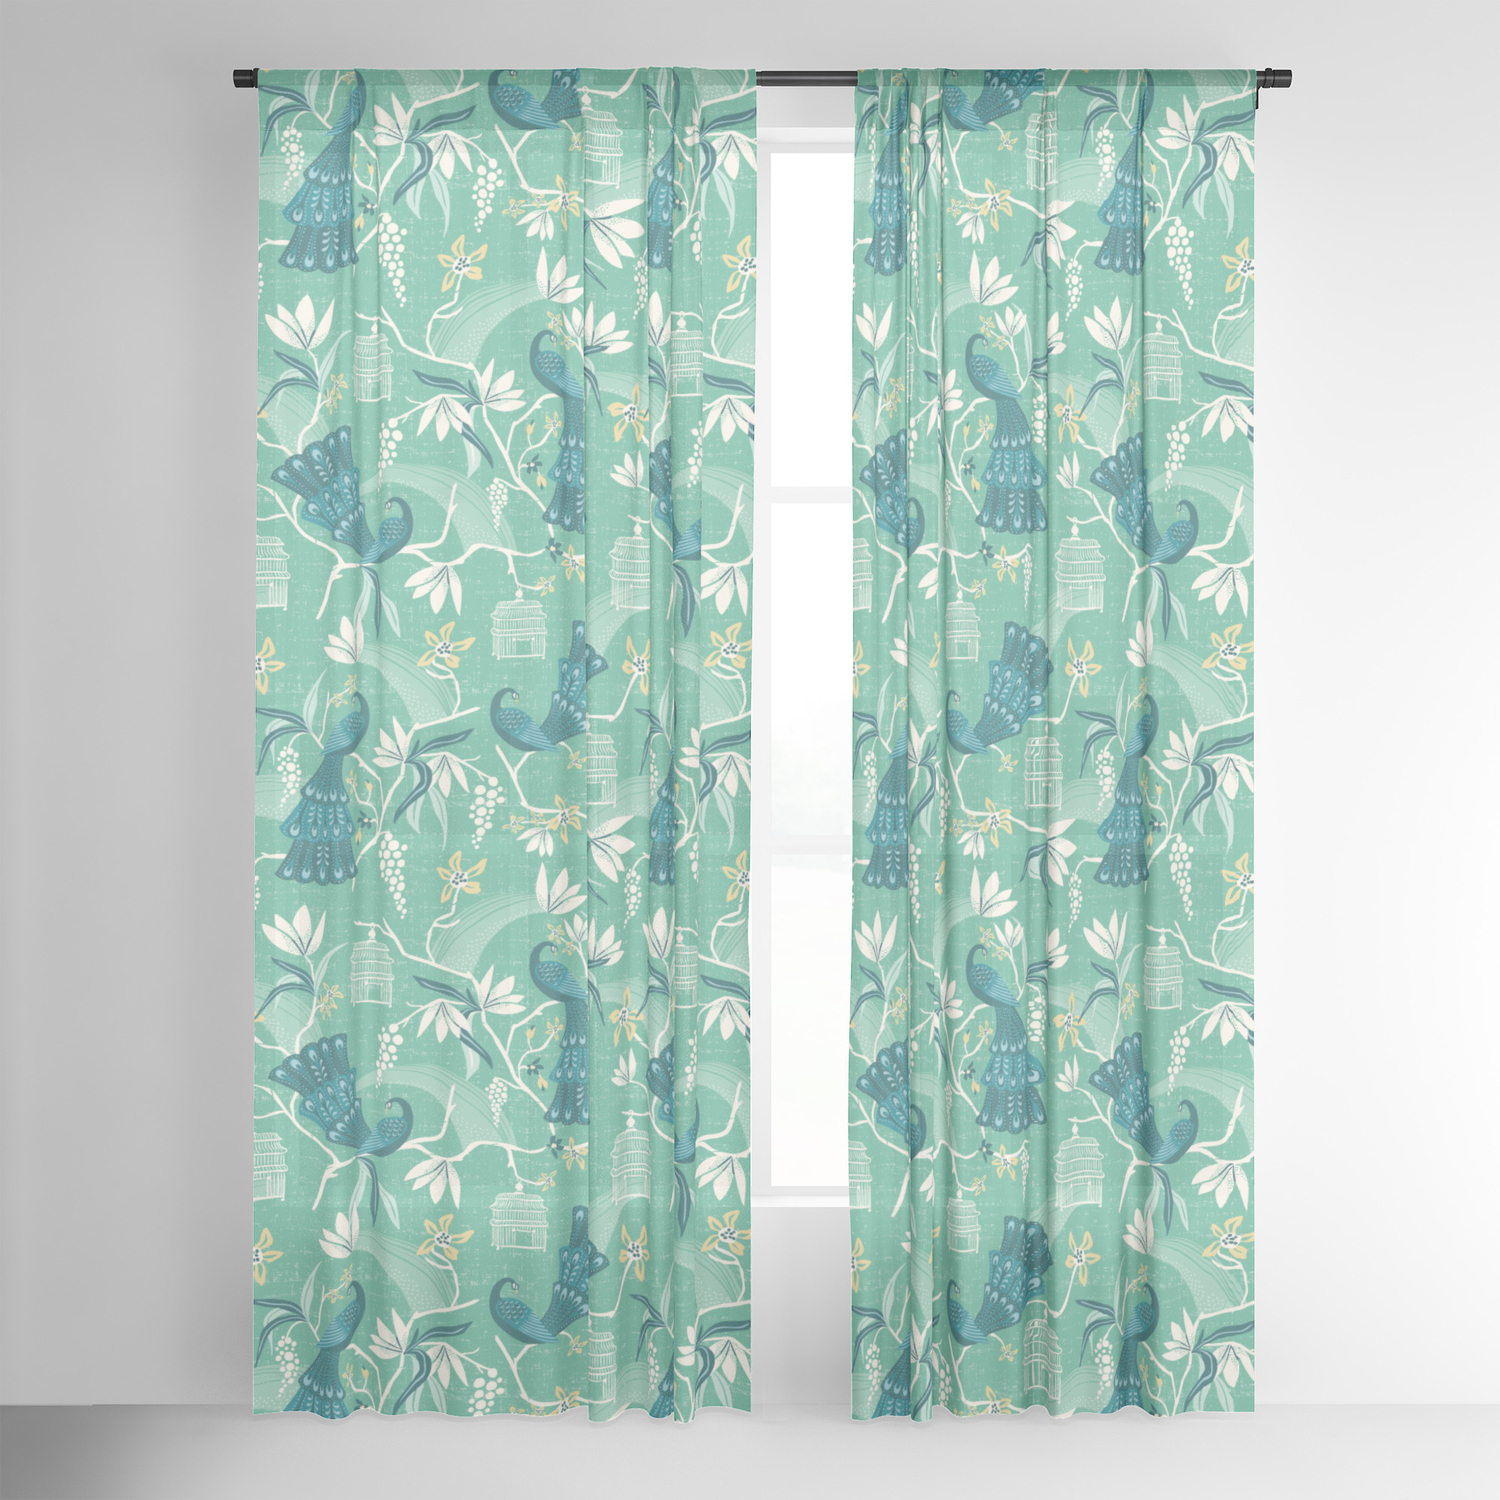 Aviary Window Curtains Pertaining To Current Aviary – Green Sheer Curtainheatherduttonhangtightstudio (View 15 of 20)